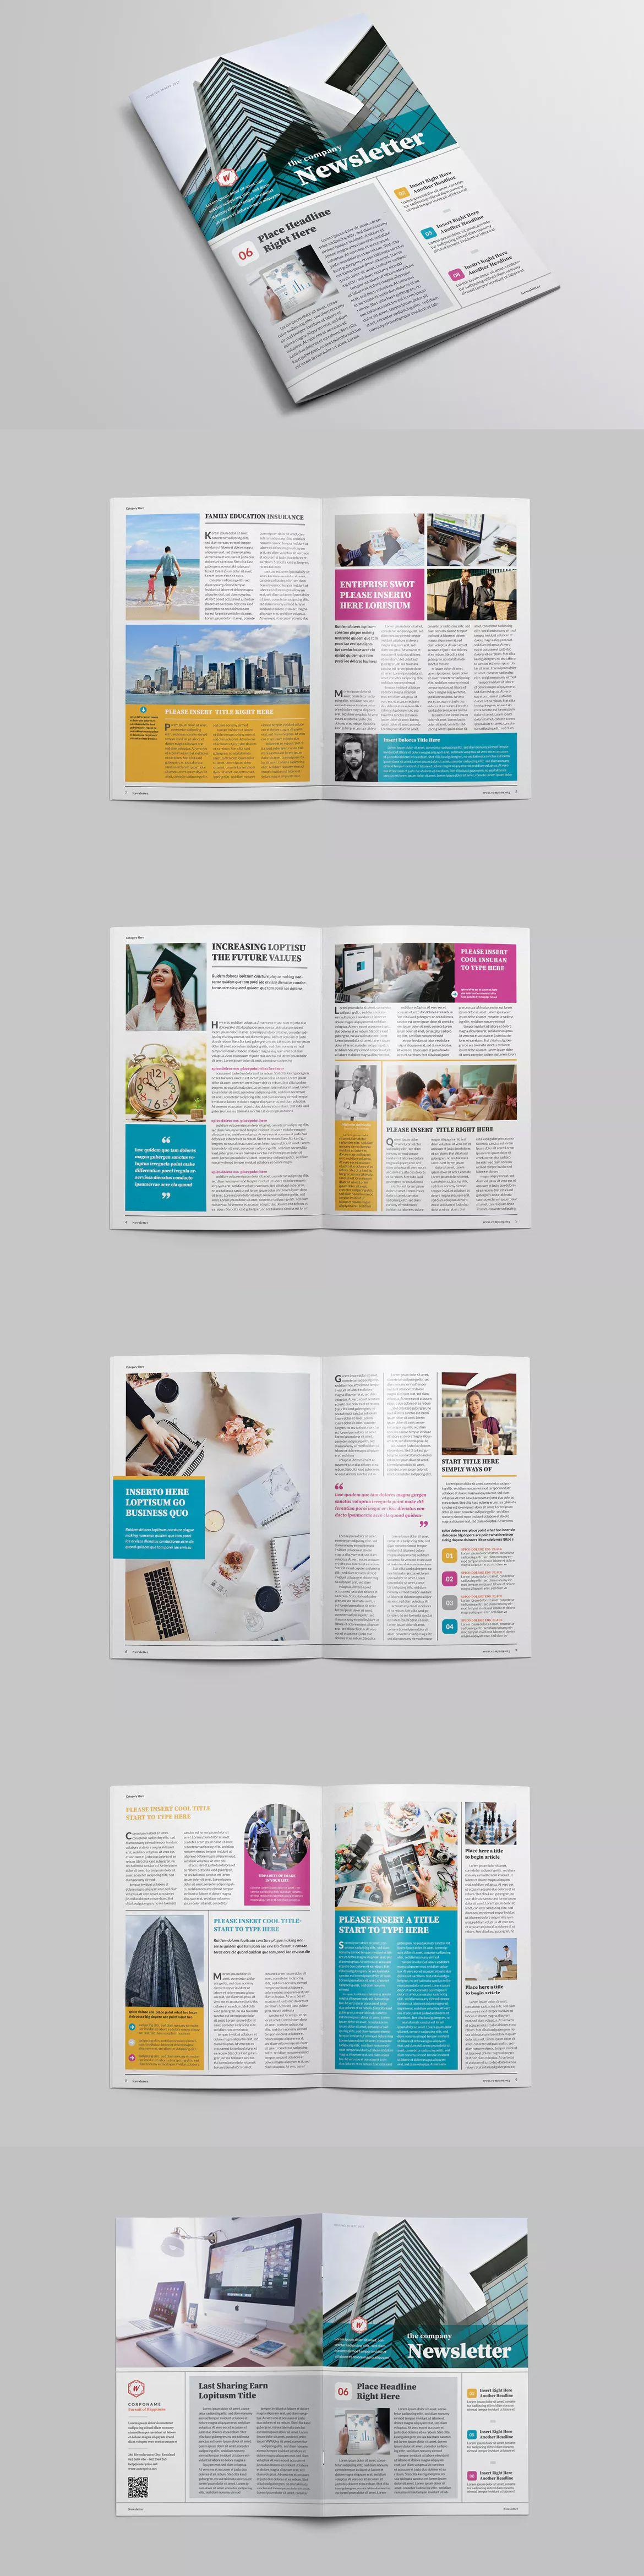 A4 Newsletter Template Indesign